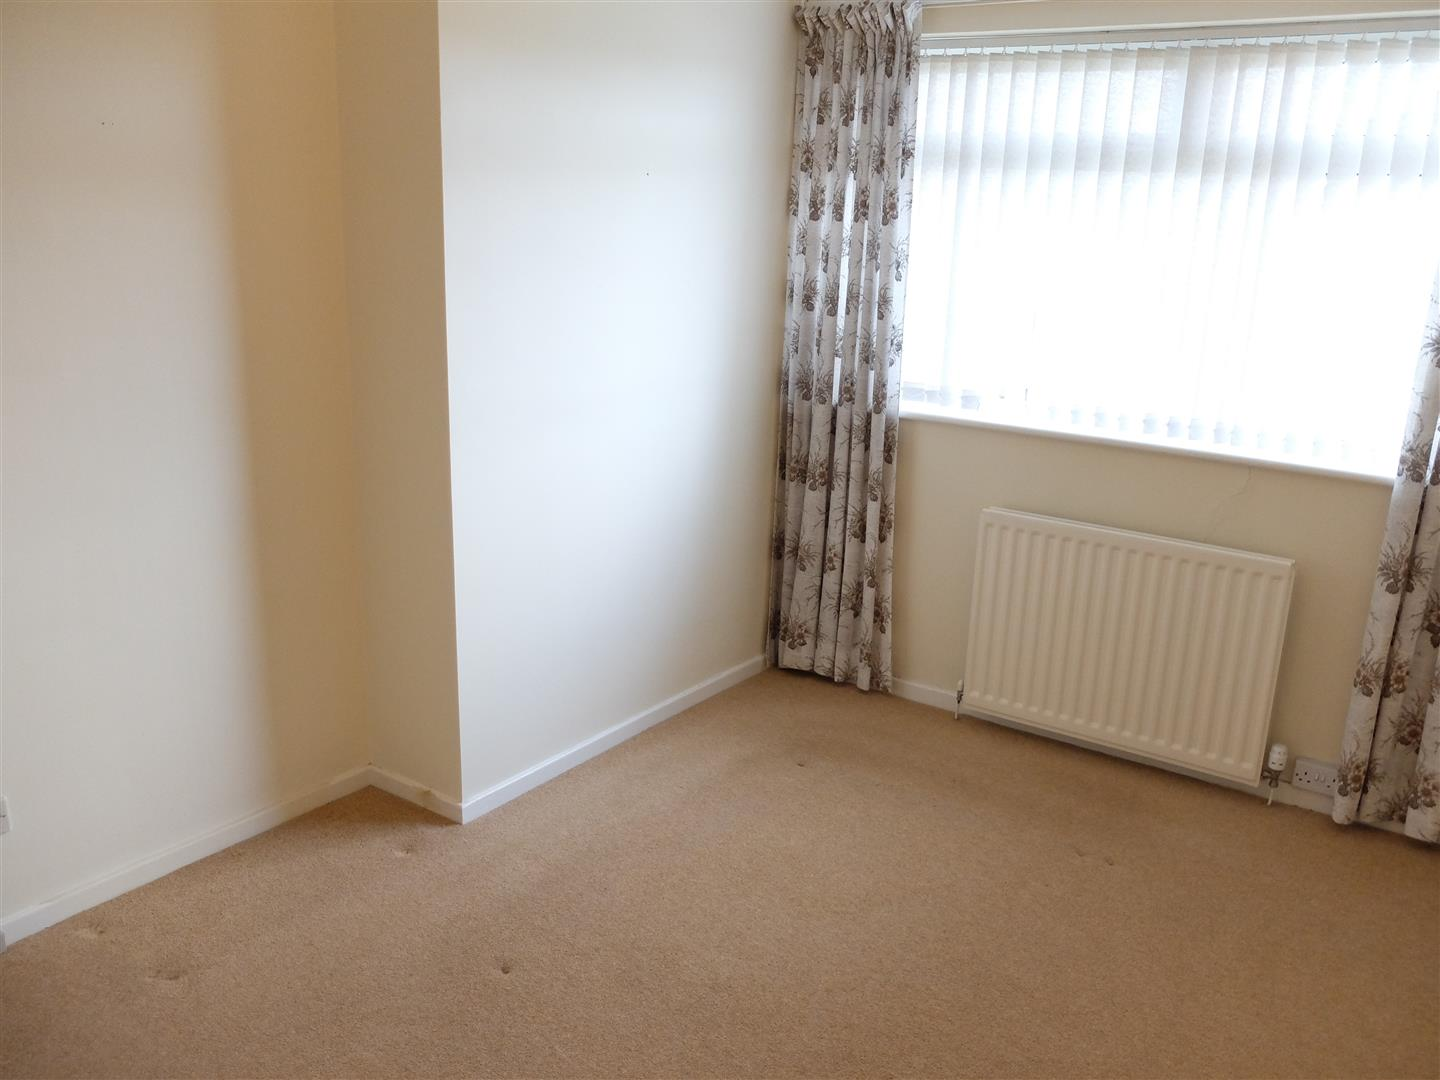 2 Farbrow Road Carlisle 2 Bedrooms Bungalow - Semi Detached For Sale 150,000